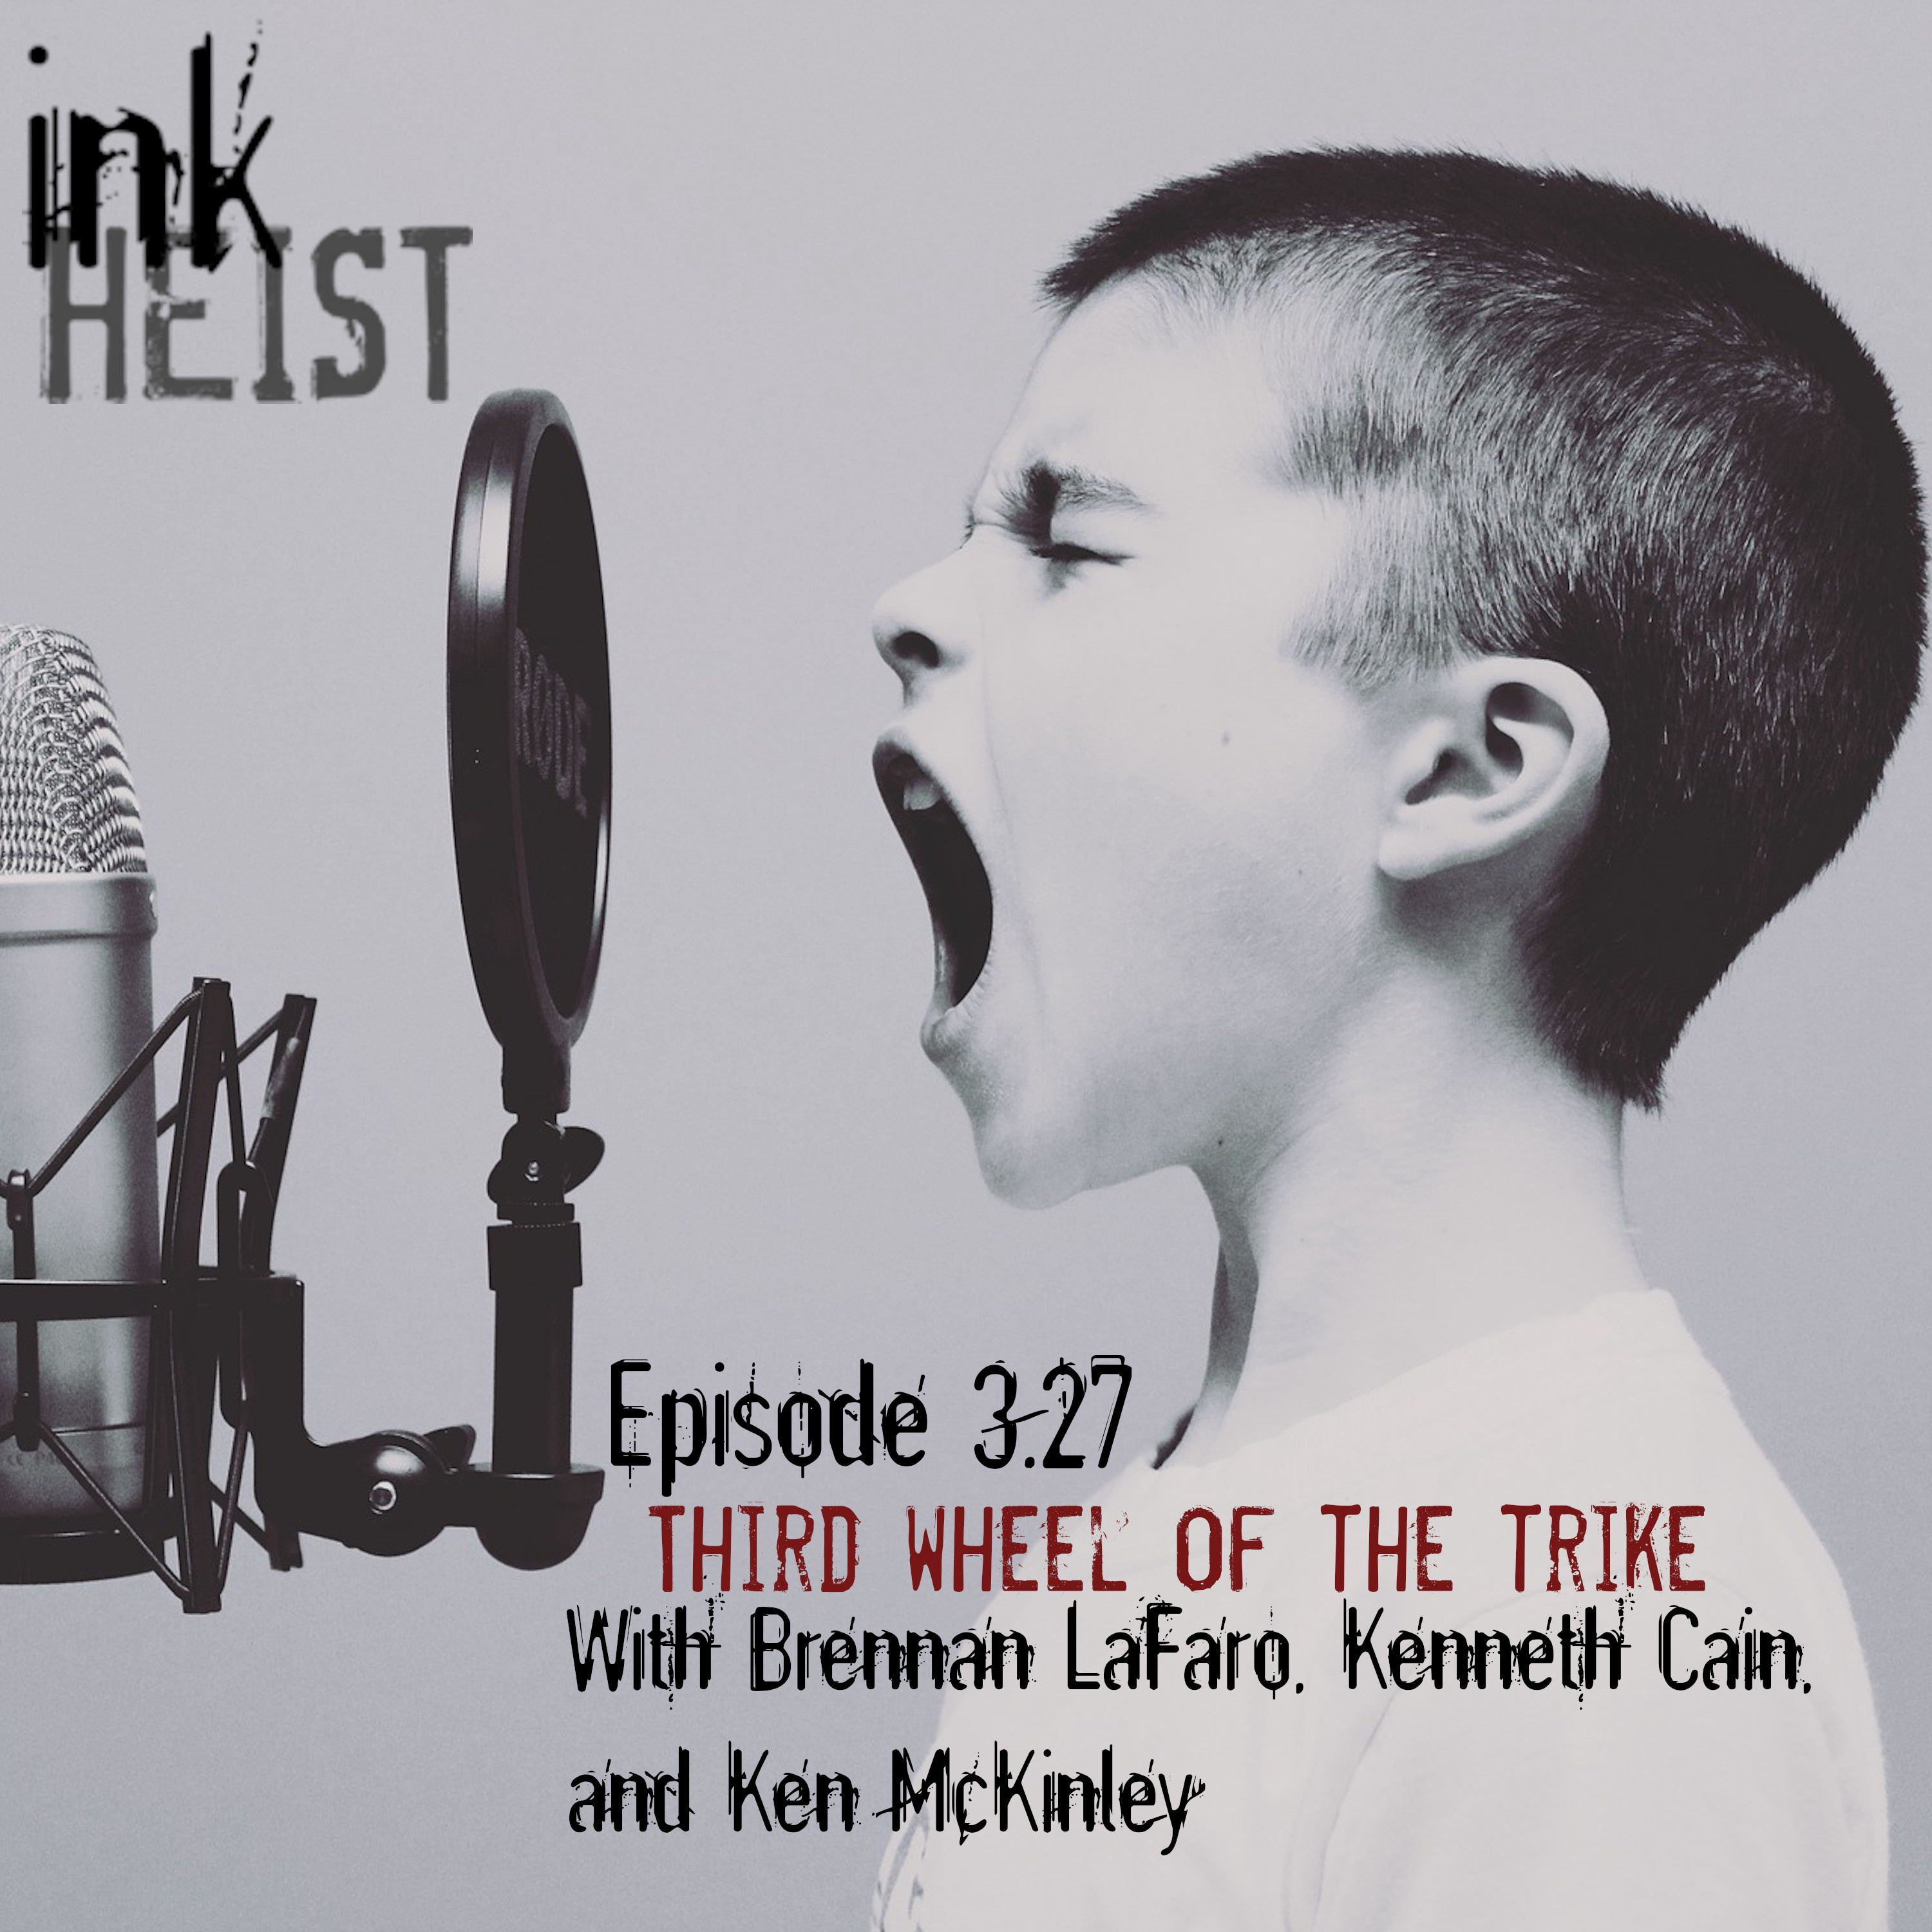 Episode 3.27 - The Third Wheel of the Trike